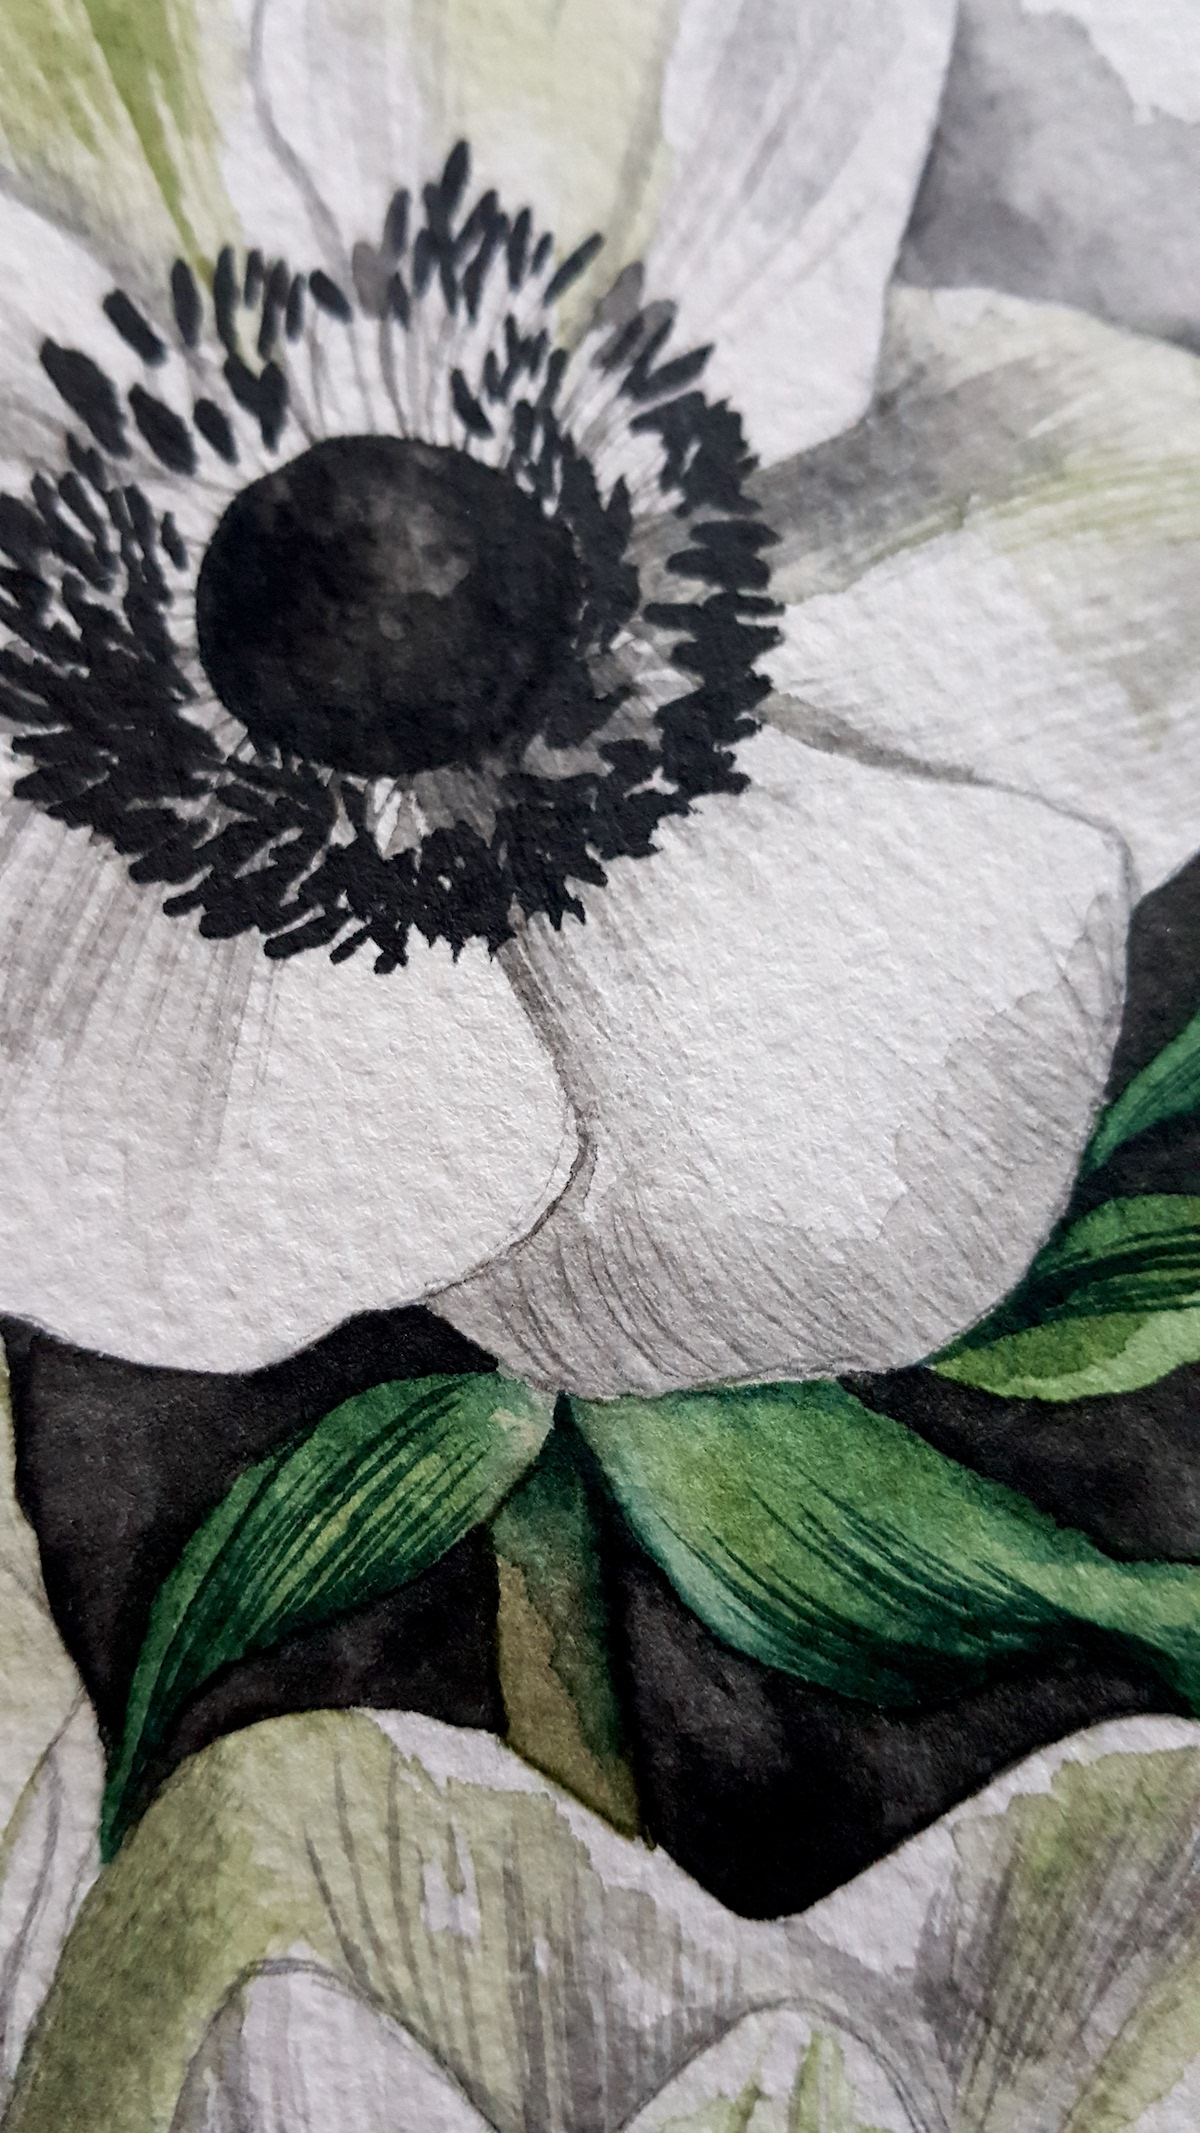 Watercolour Illustration - anemone flower's centre with black details